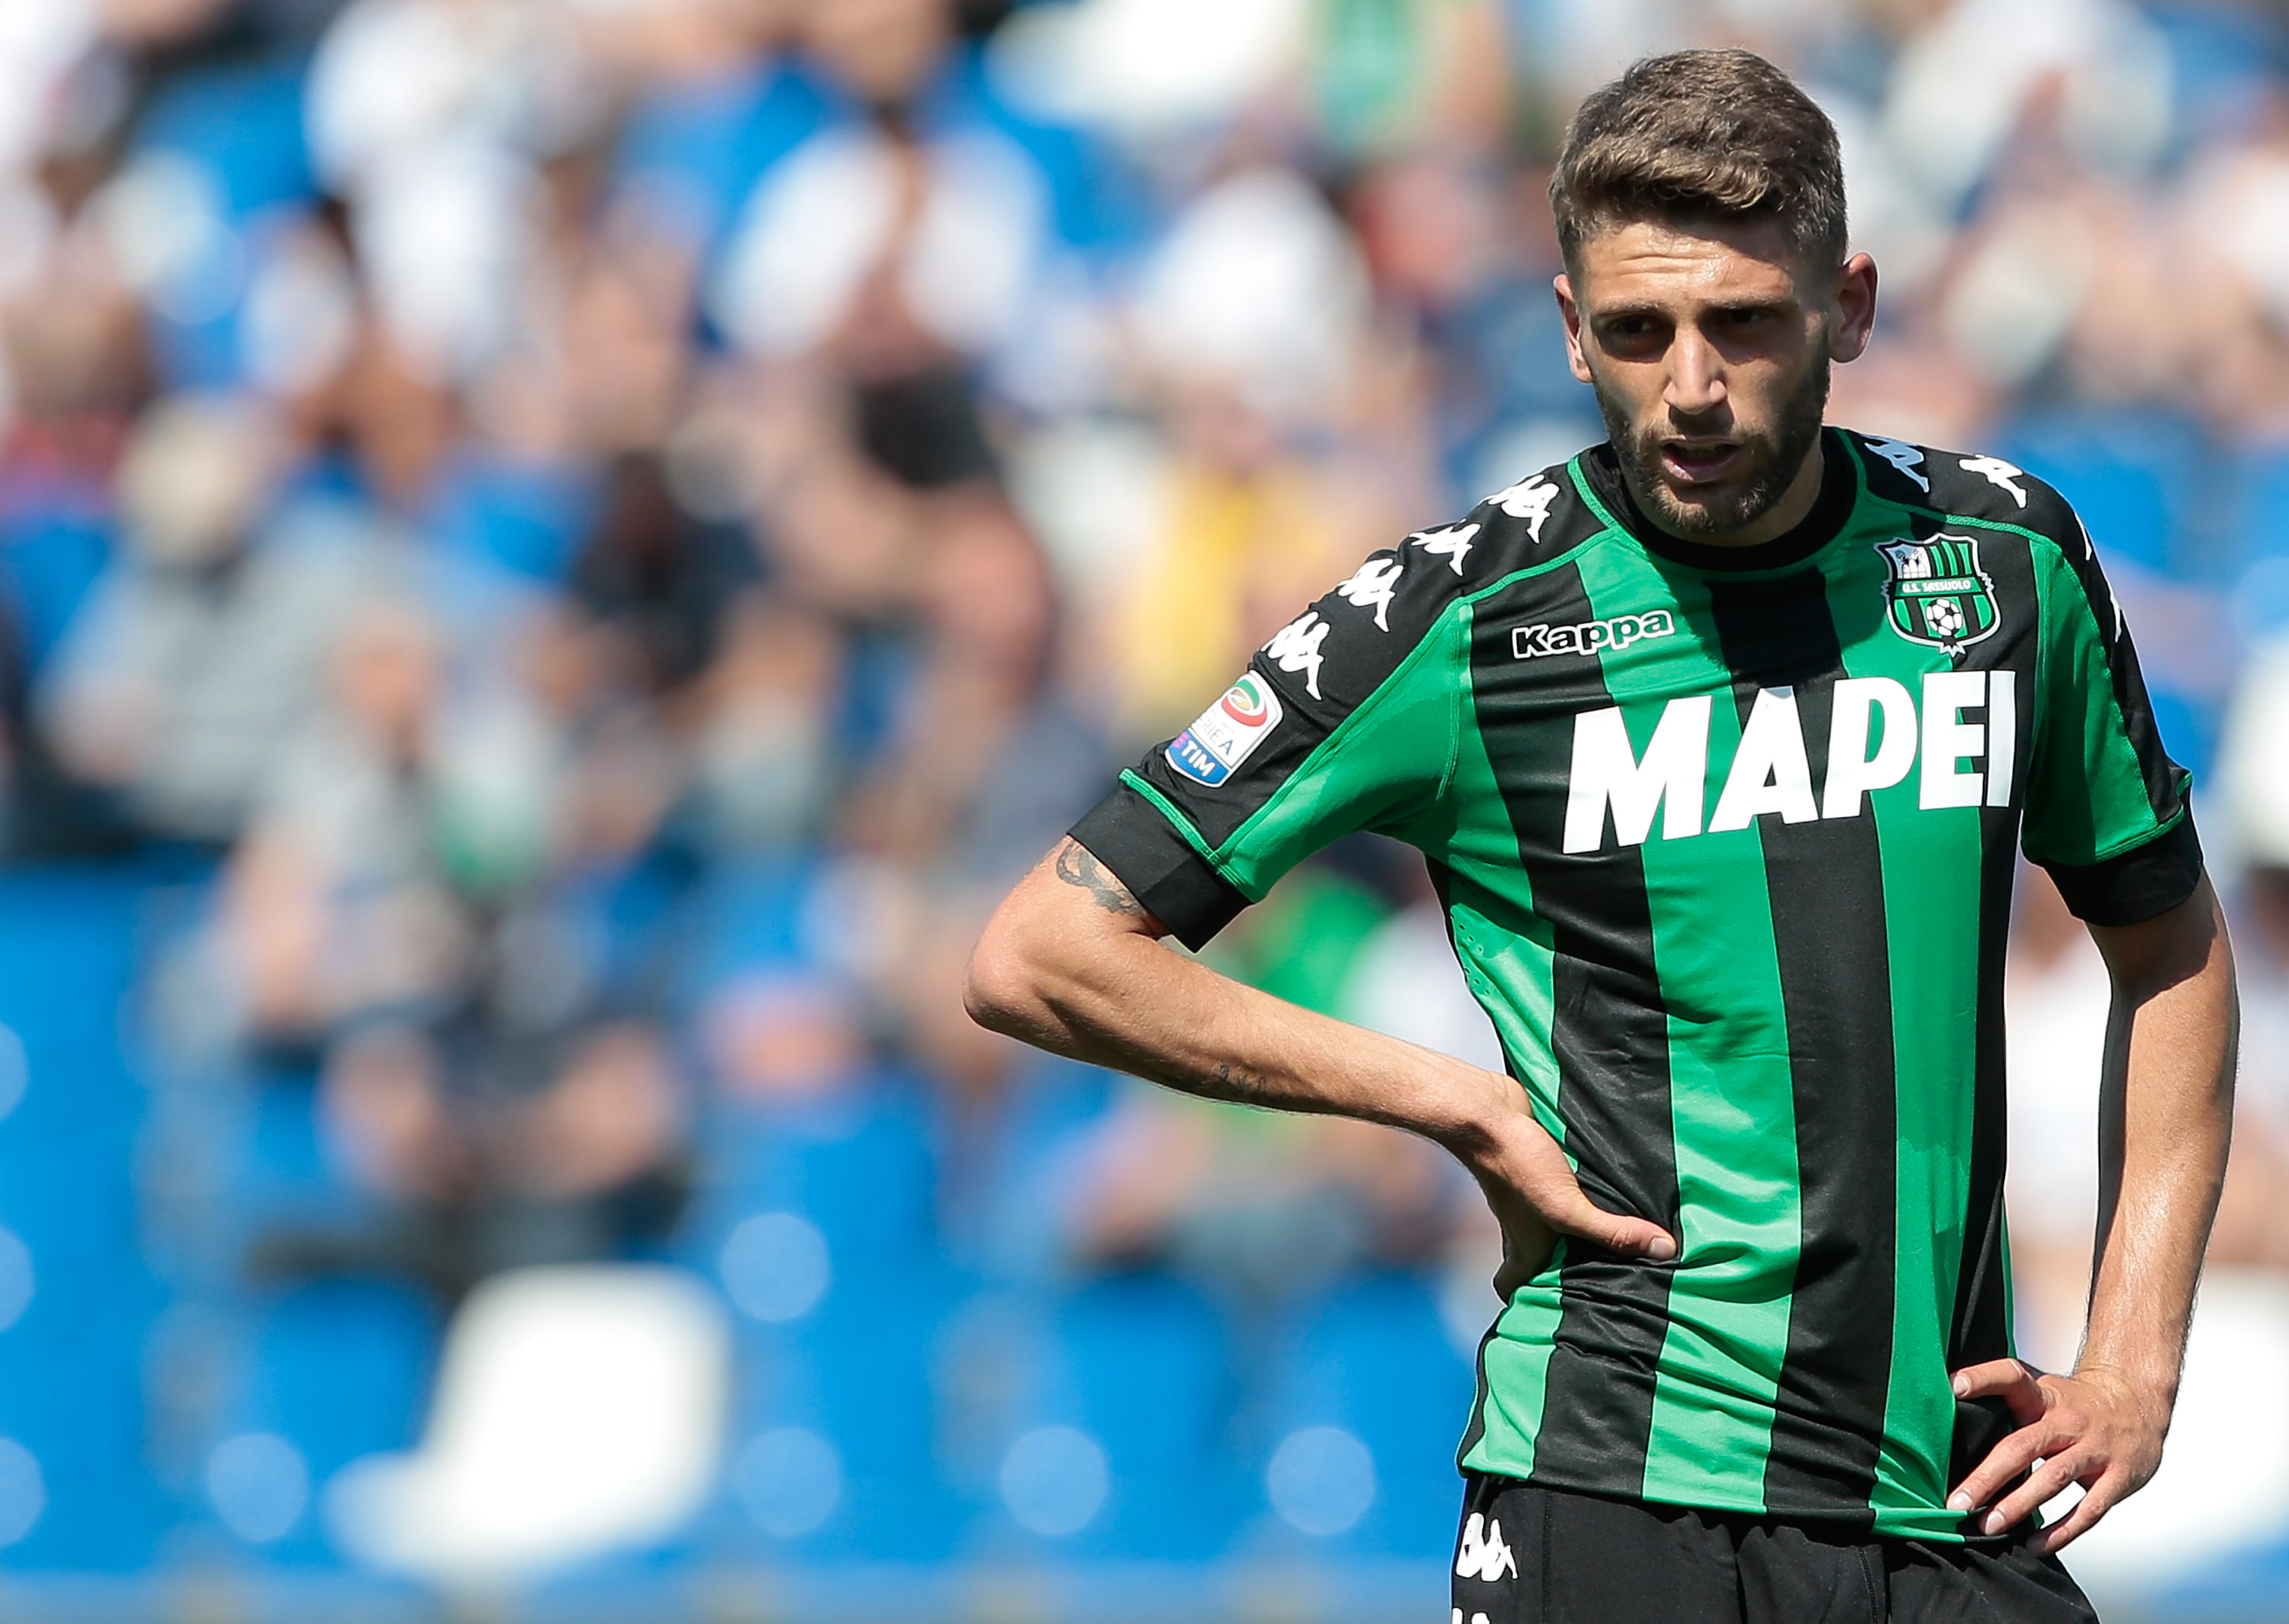 Berardi on Liverpool's radar (Photo by Emilio Andreoli/Getty Images)